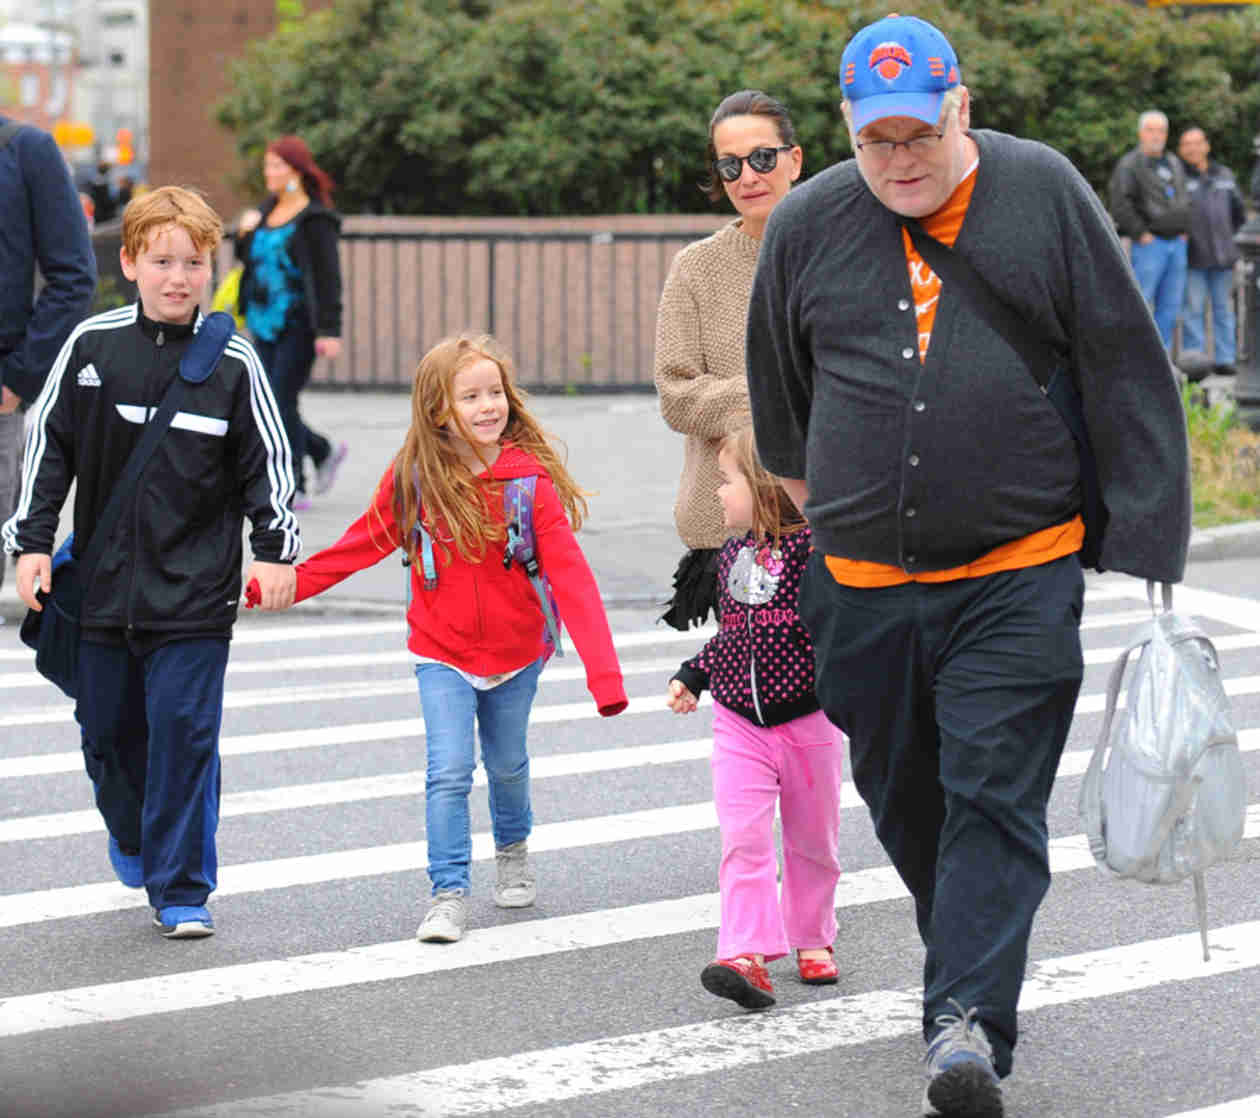 How Old Are Philip Seymour Hoffman's Kids?